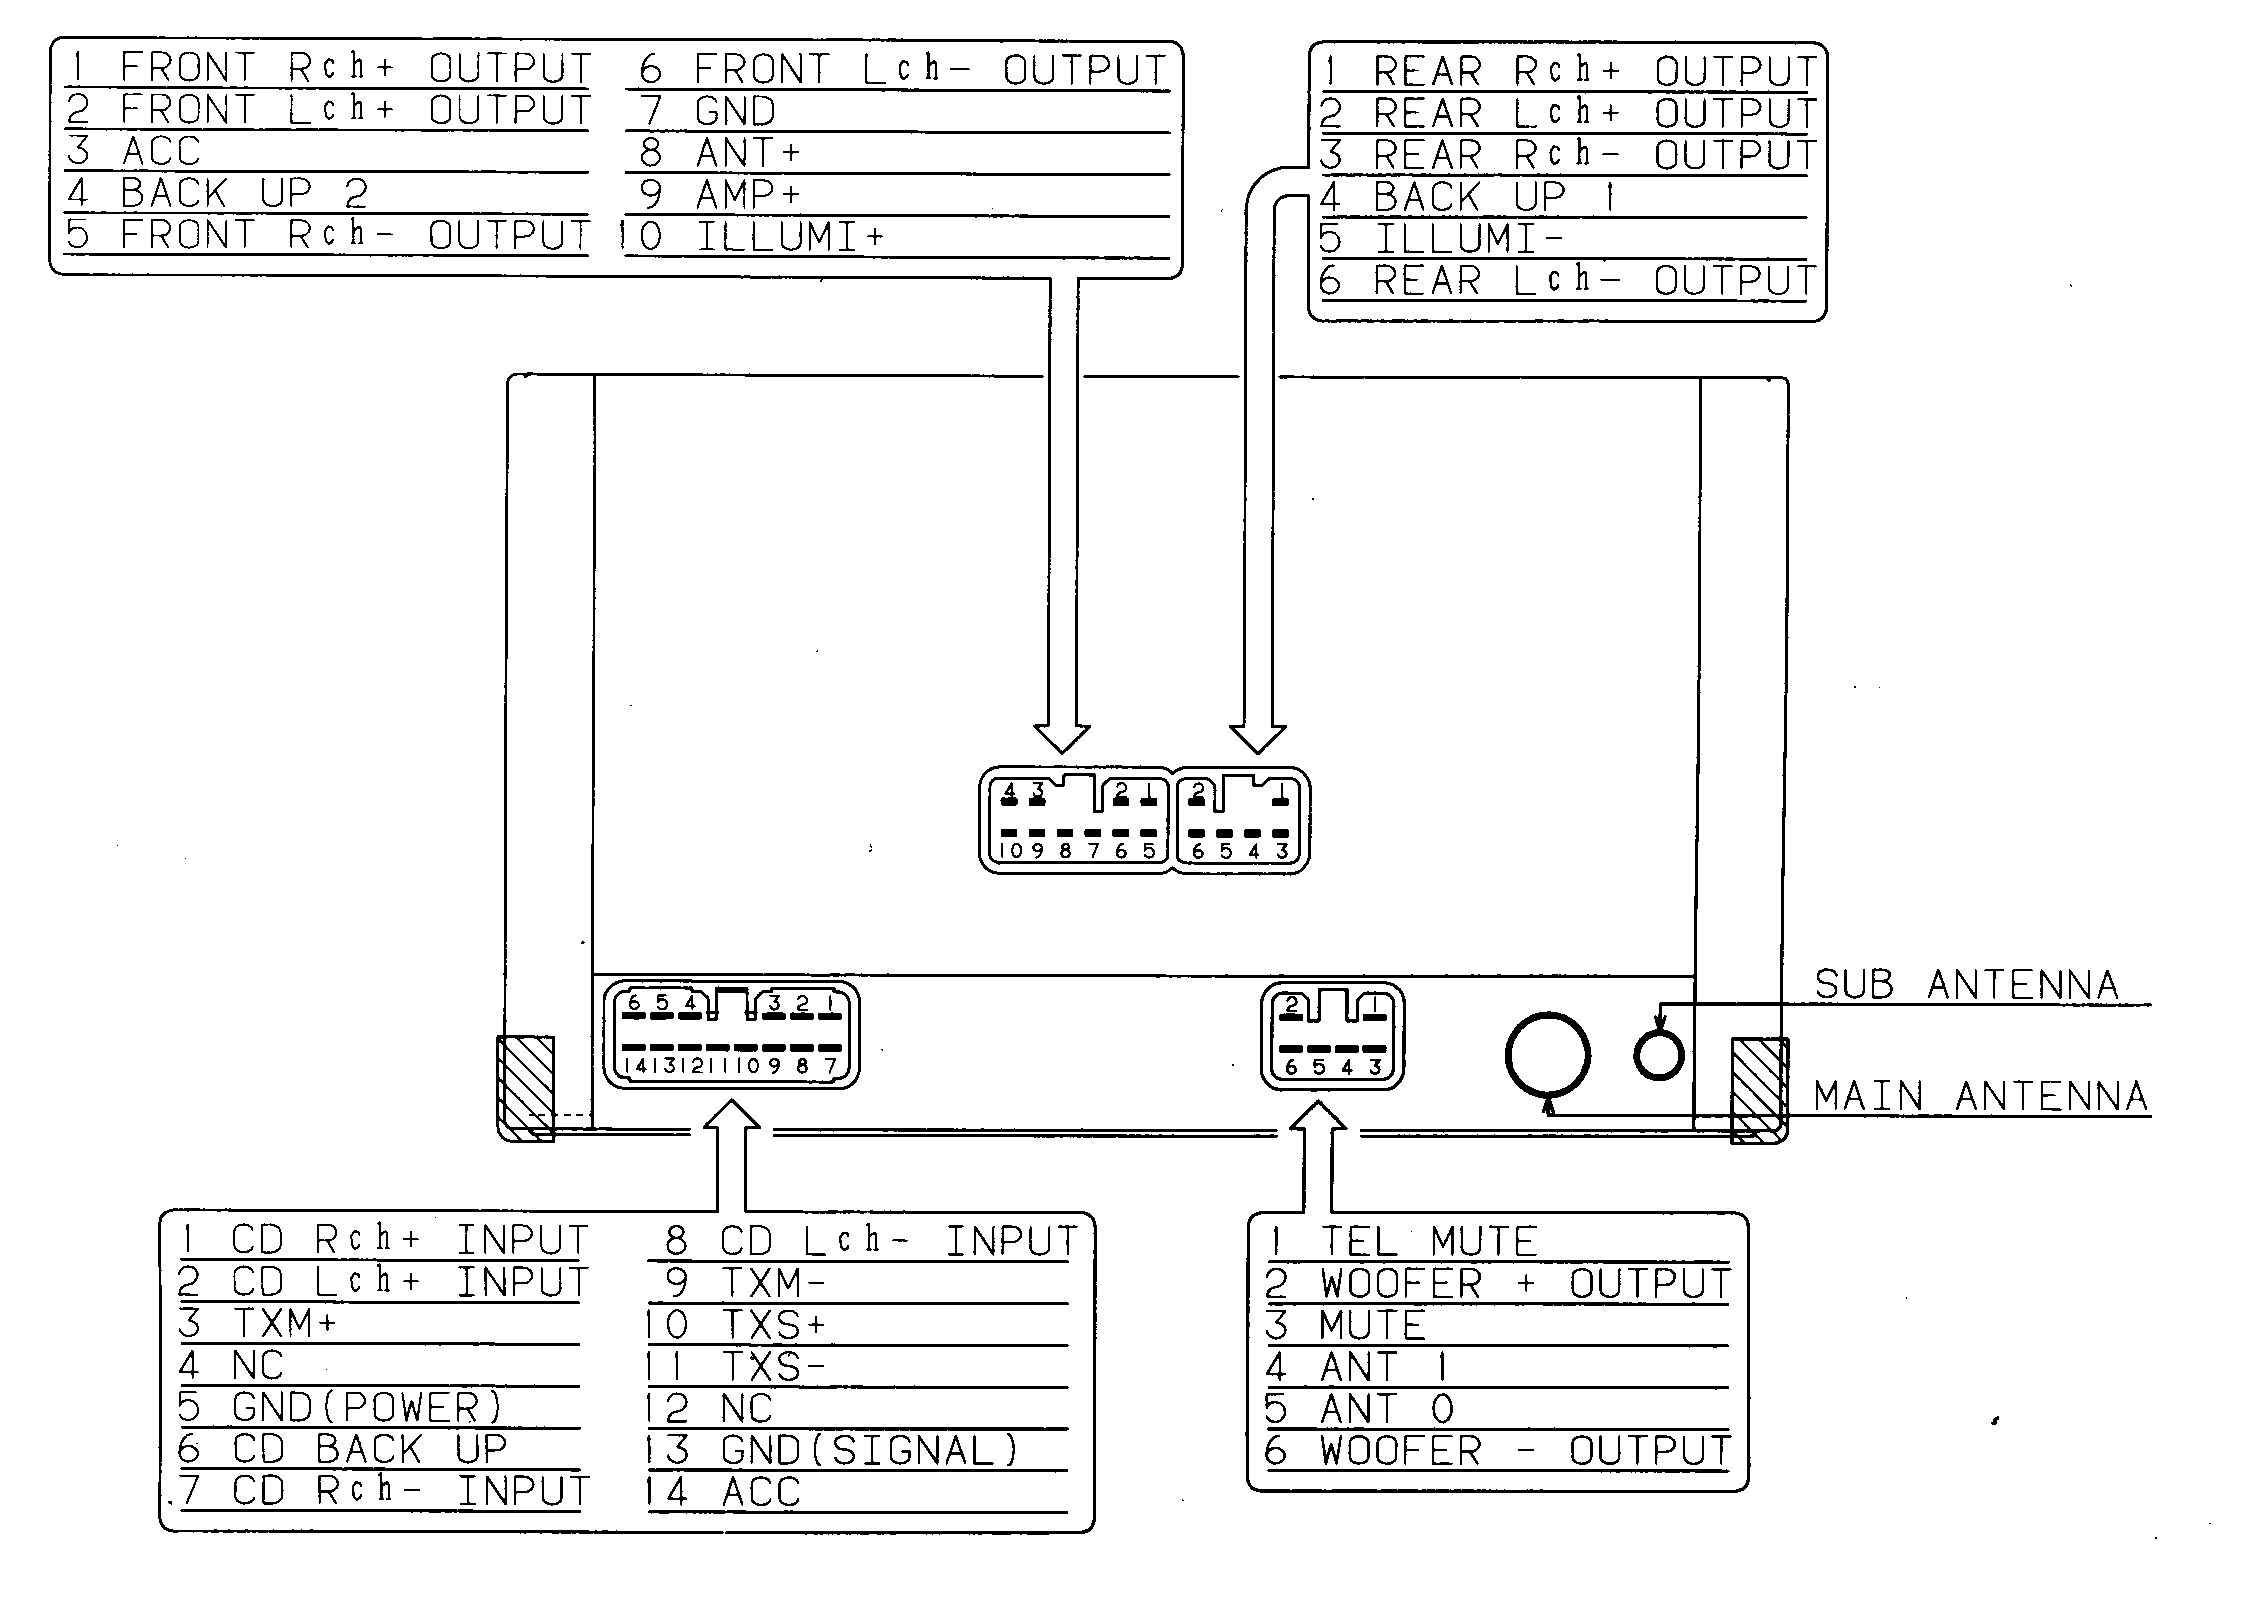 car audio wire diagram codes lexus - factory car stereo repair, Wiring diagram